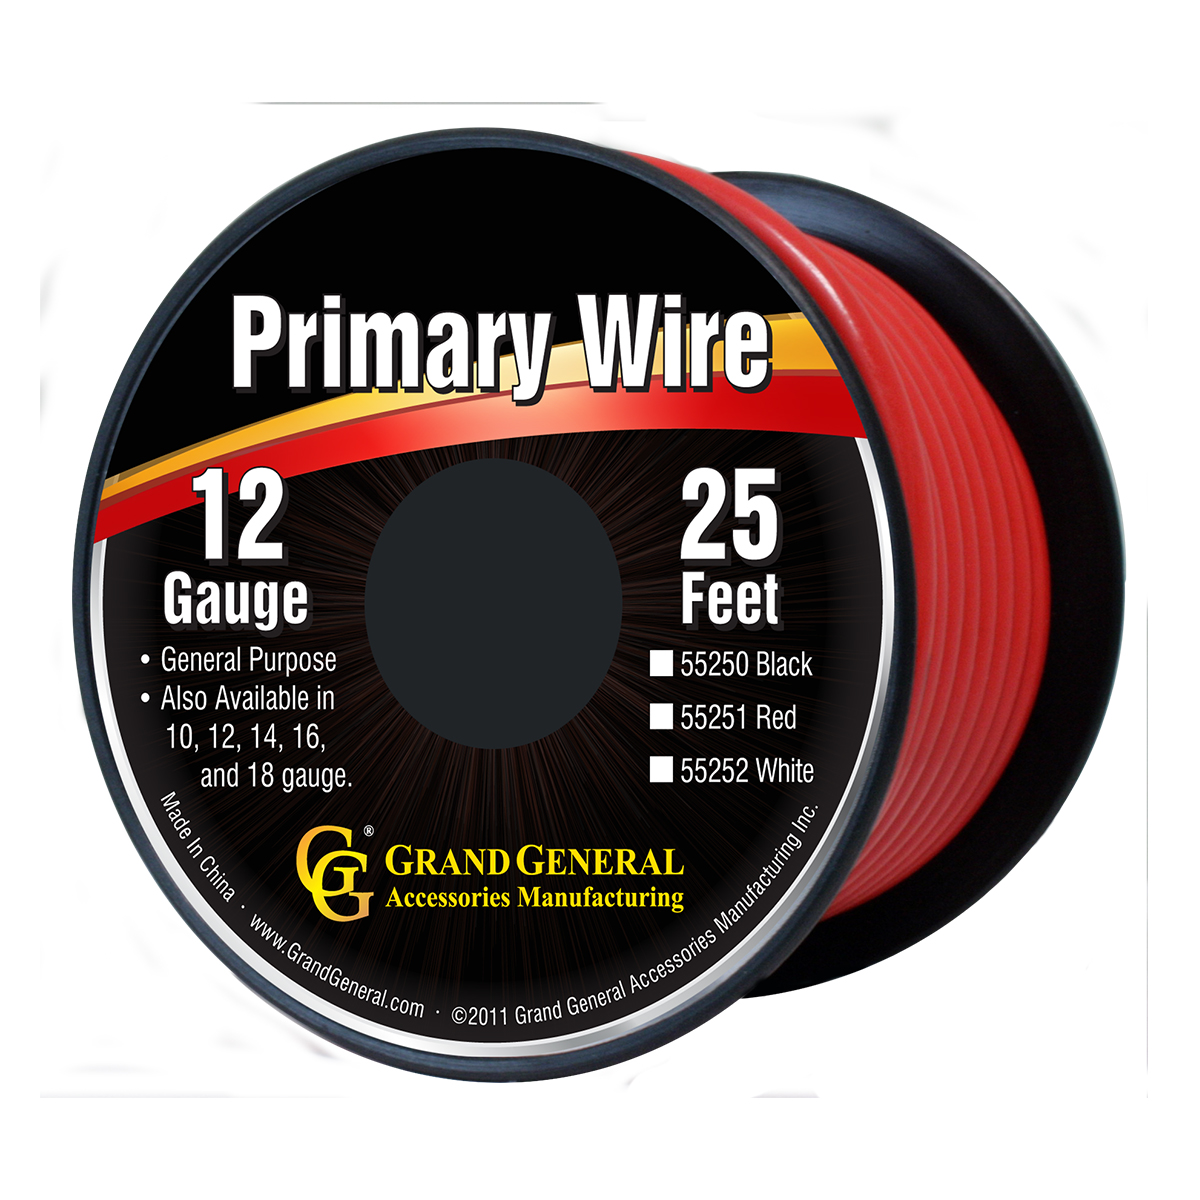 55251/55251SP Primary Wire in 12 Gauge, 25 Feet